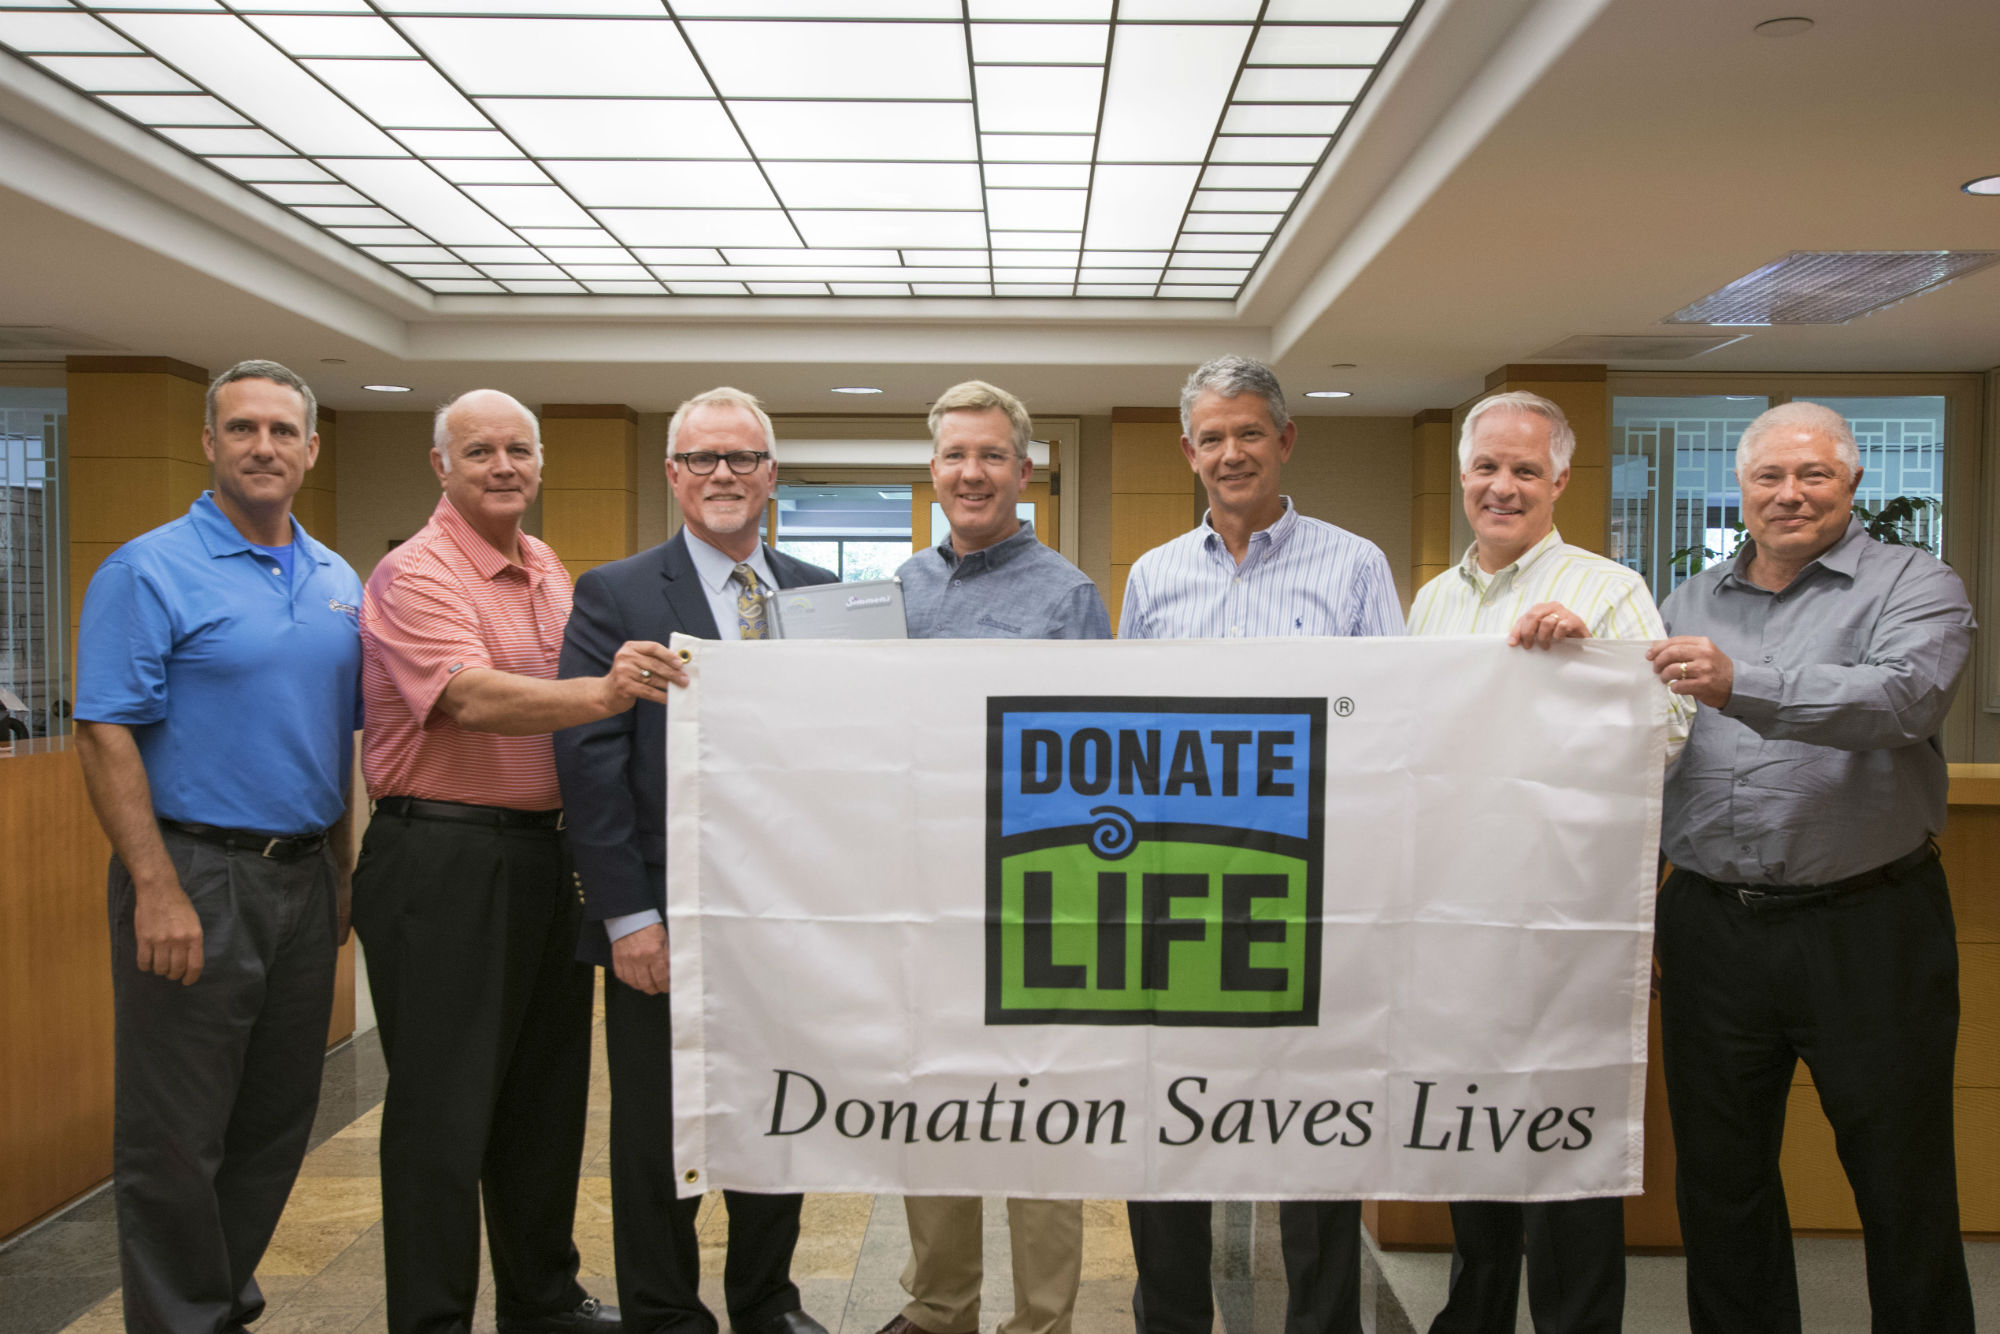 [From Left] David Jackson, President/COO Simmons Pet Food, Gary Murphy, President/COO Simmons Prepared Foods, Alan Cochran, President/Executive Director ARORA, Todd Simmons, CEO Simmons Foods, Dan Houston, Chief Human Resources Officer, Simmons Foods, and Jerry Laster, Chief Strategy Officer (Everyone pictured here is a registered organ donor)